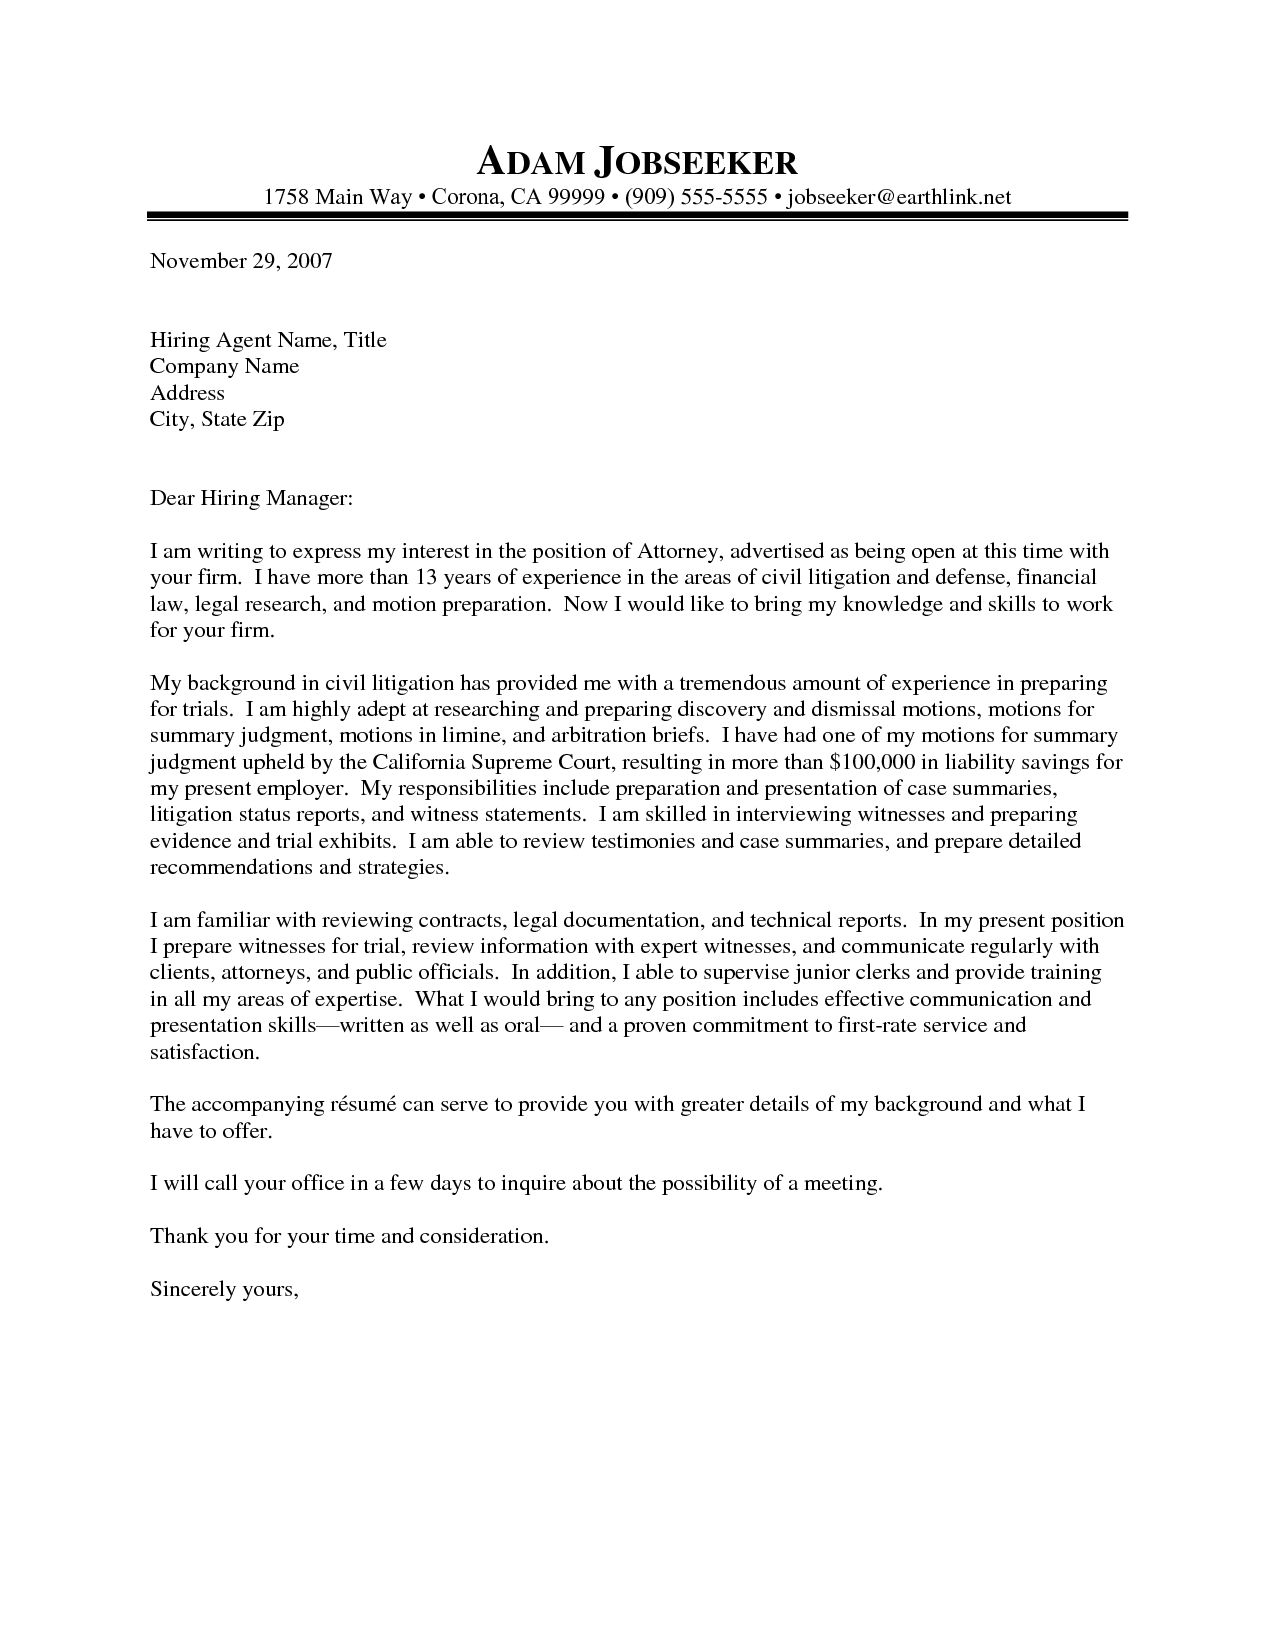 23+ Cover Letter For Law Firm Cover letter, Cover letter